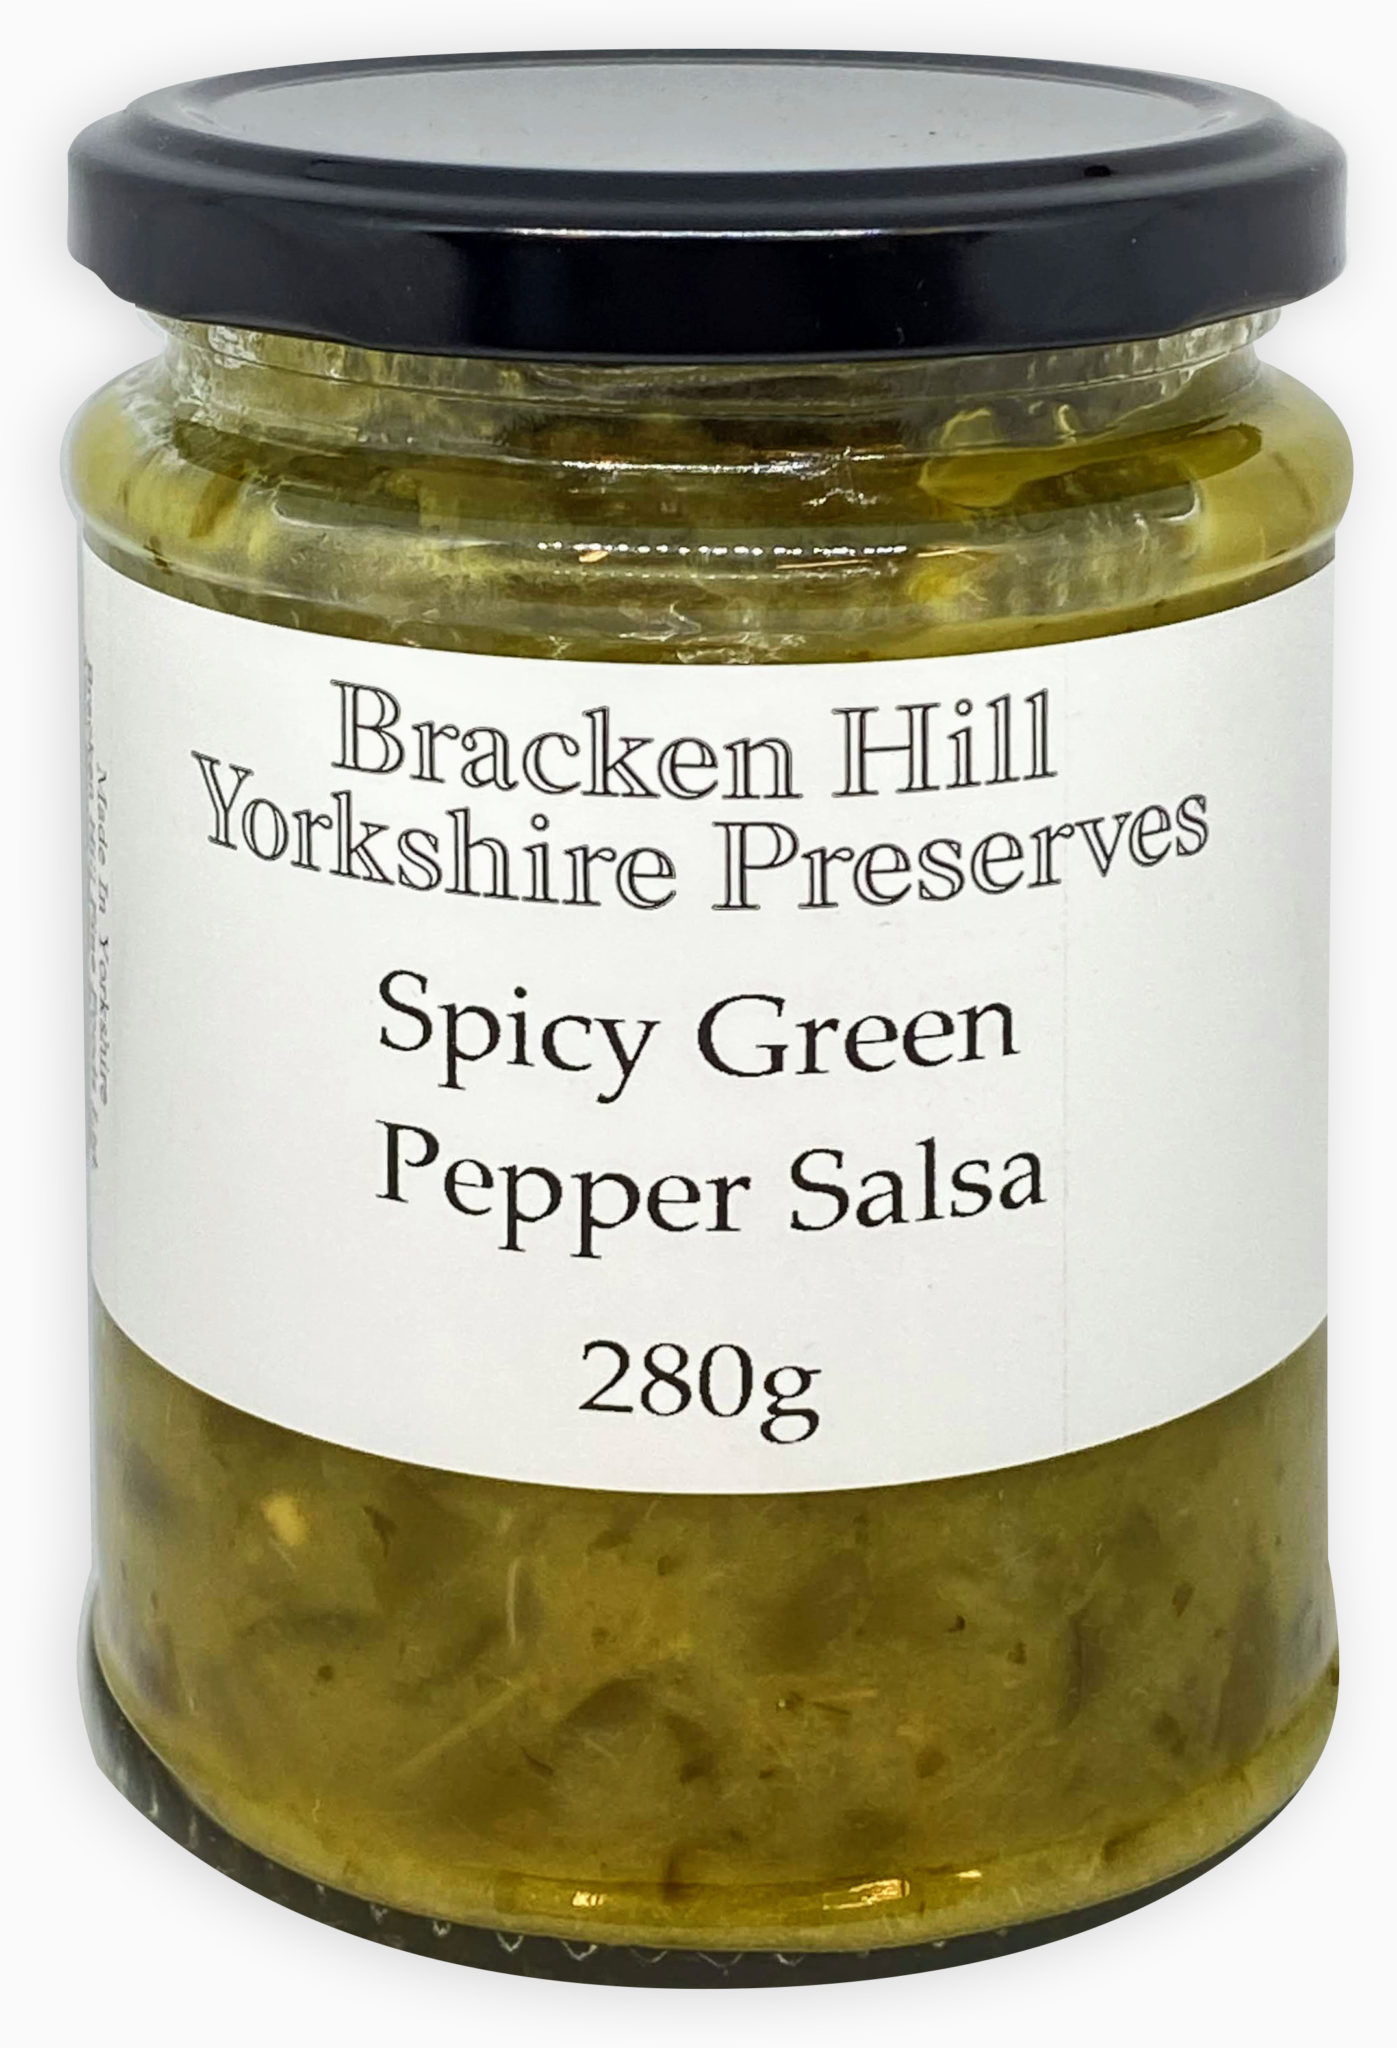 Spicy Green Pepper Salsa